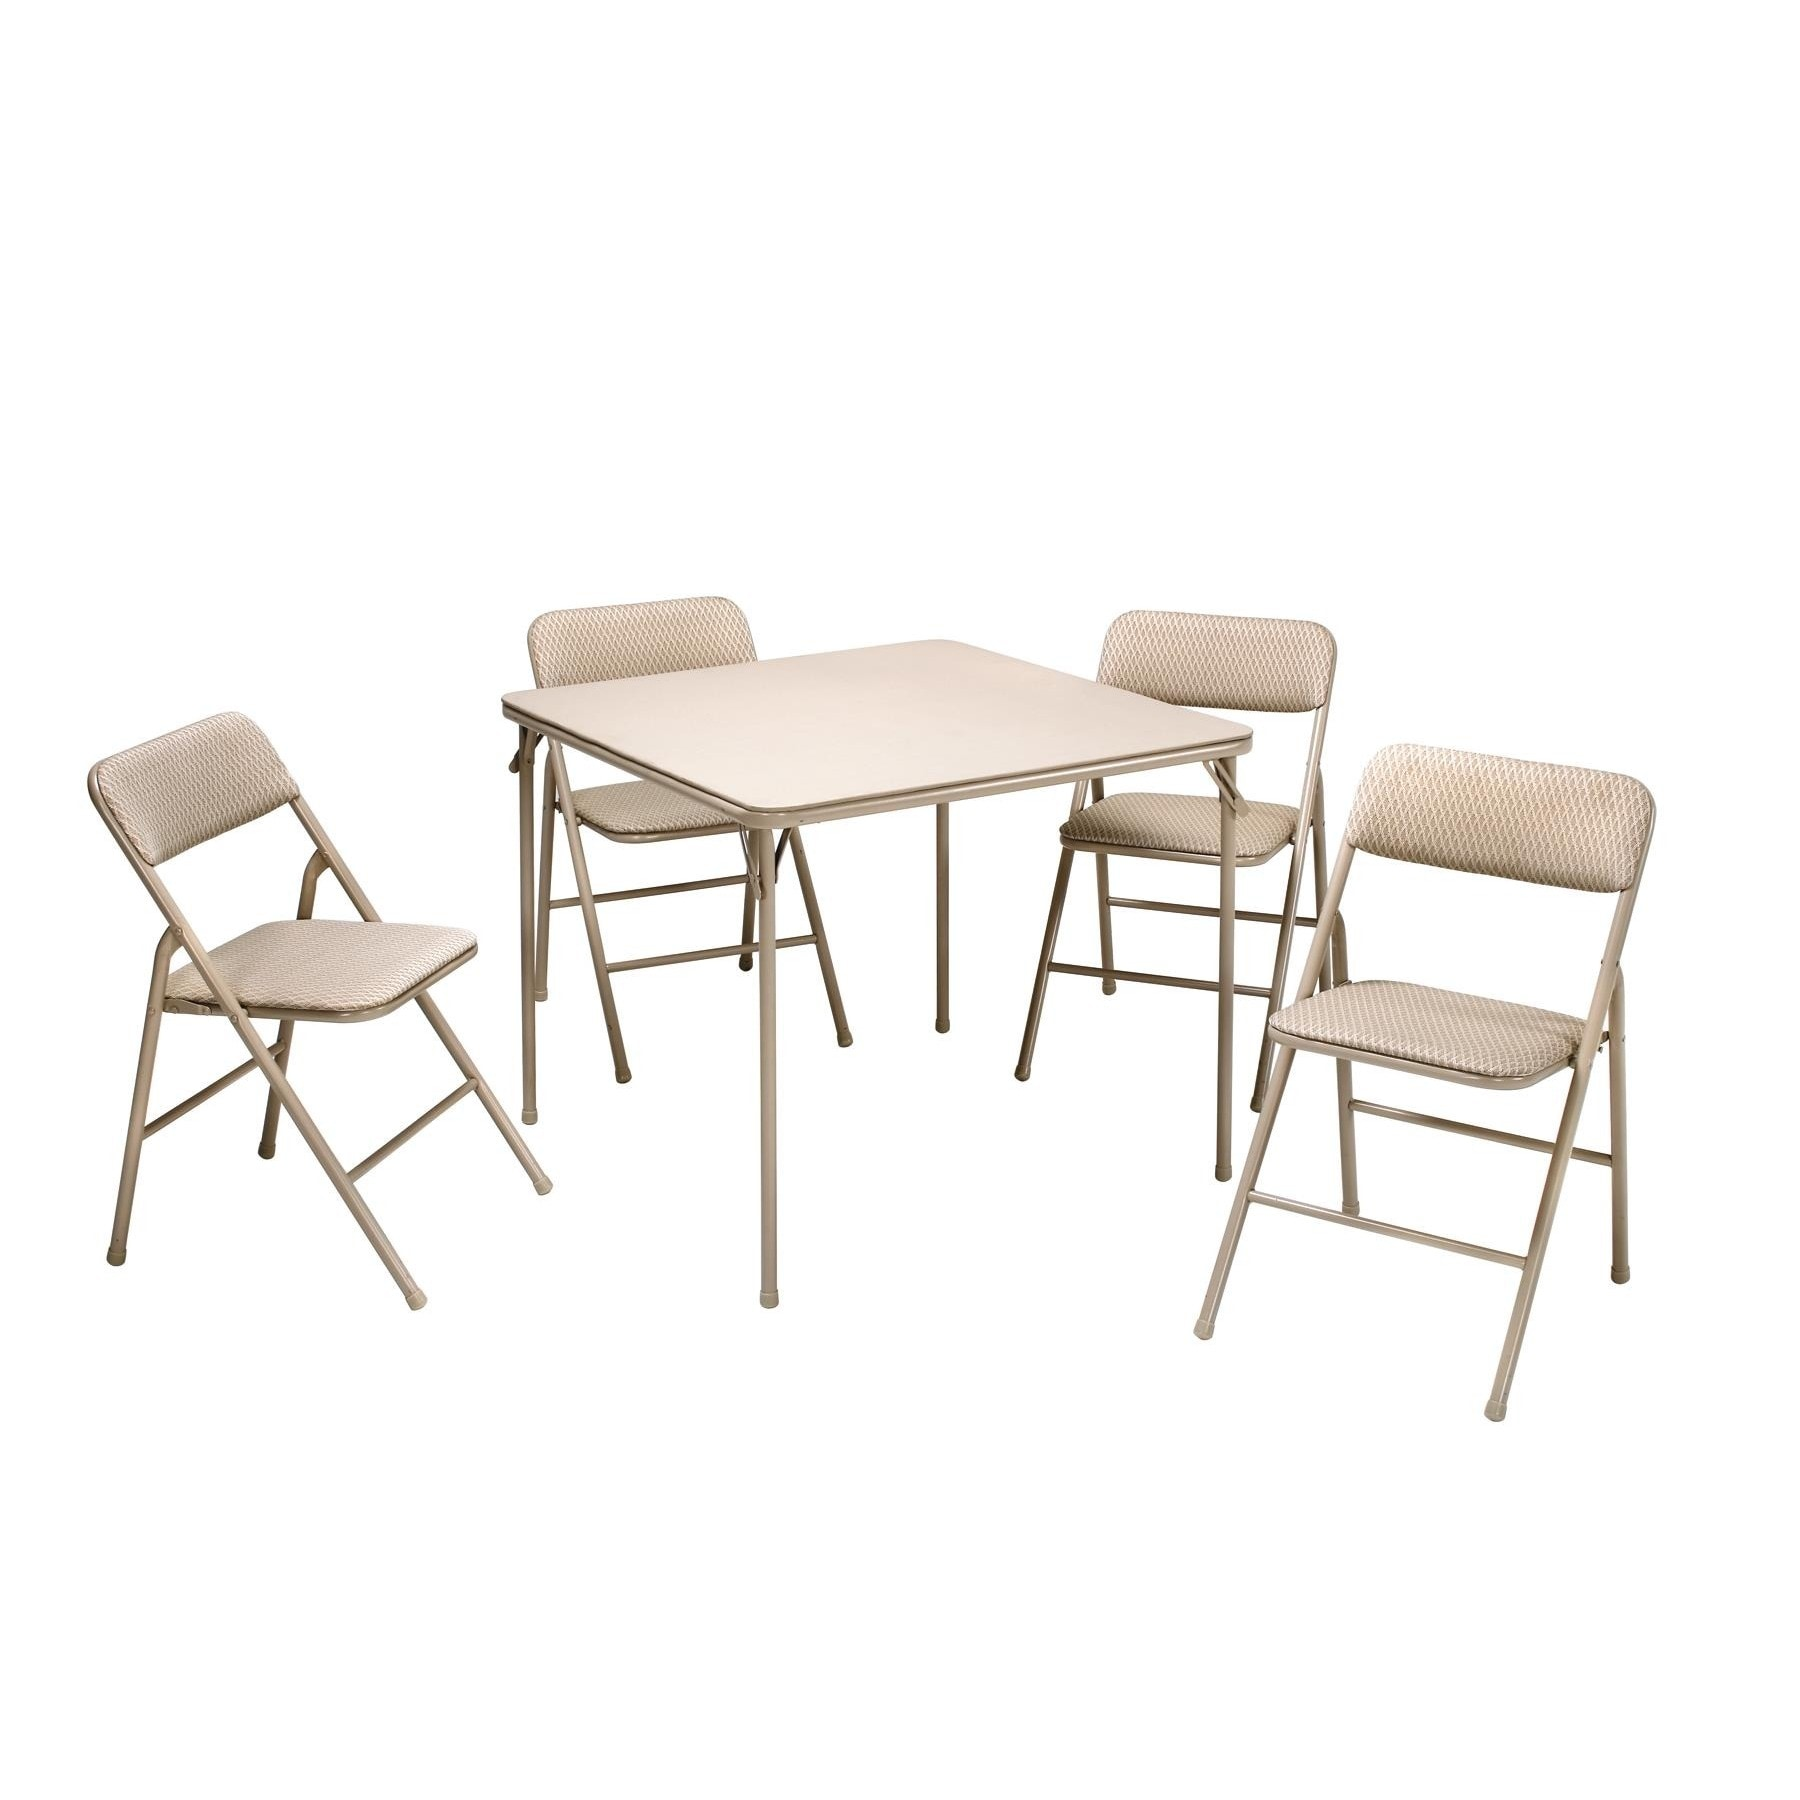 Cosco Folding Table and 5-piece Chairs Set (Cosco Folding...